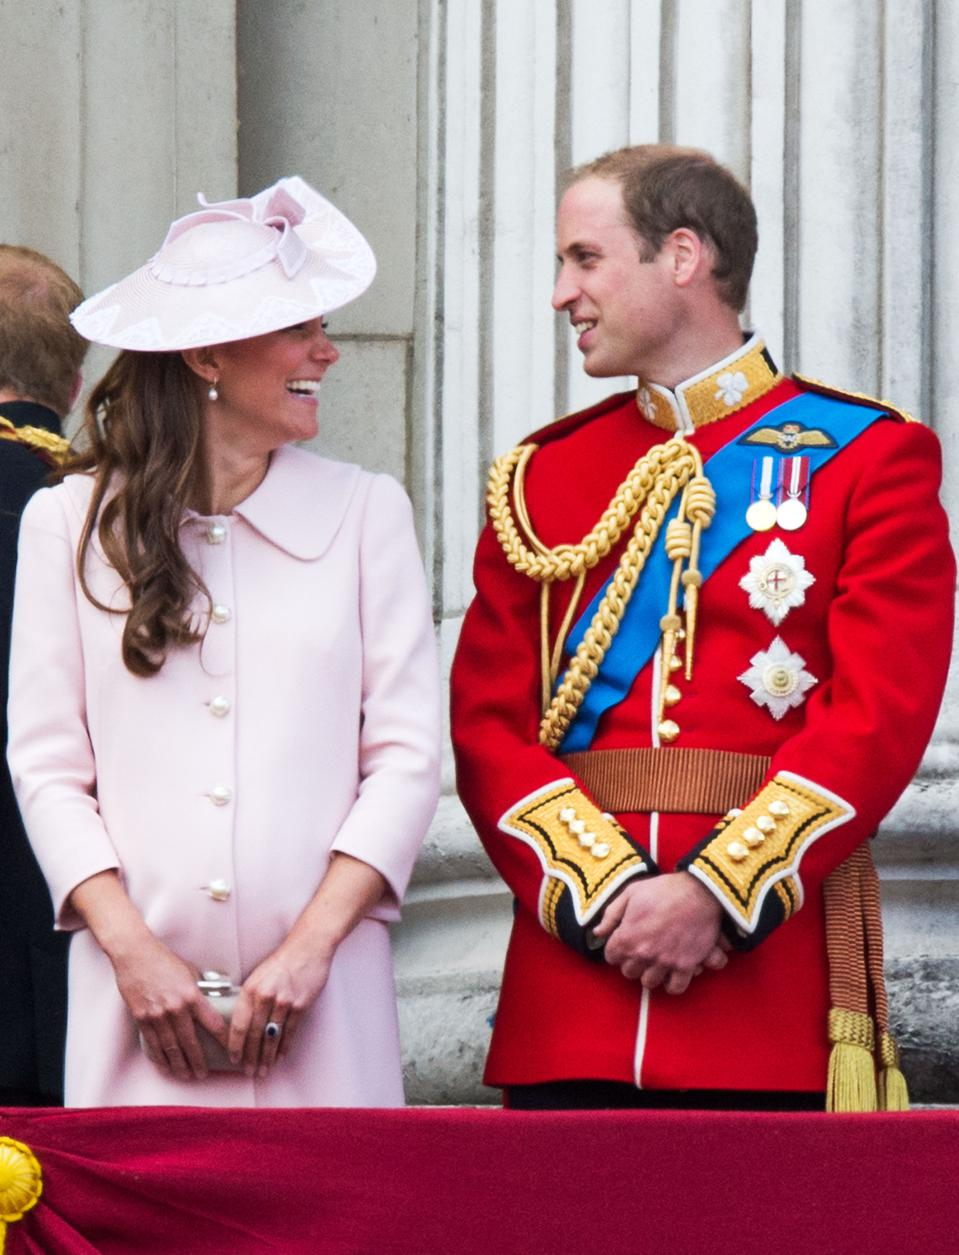 Prince William and Kate Middleton during Trooping The Colour in 2013